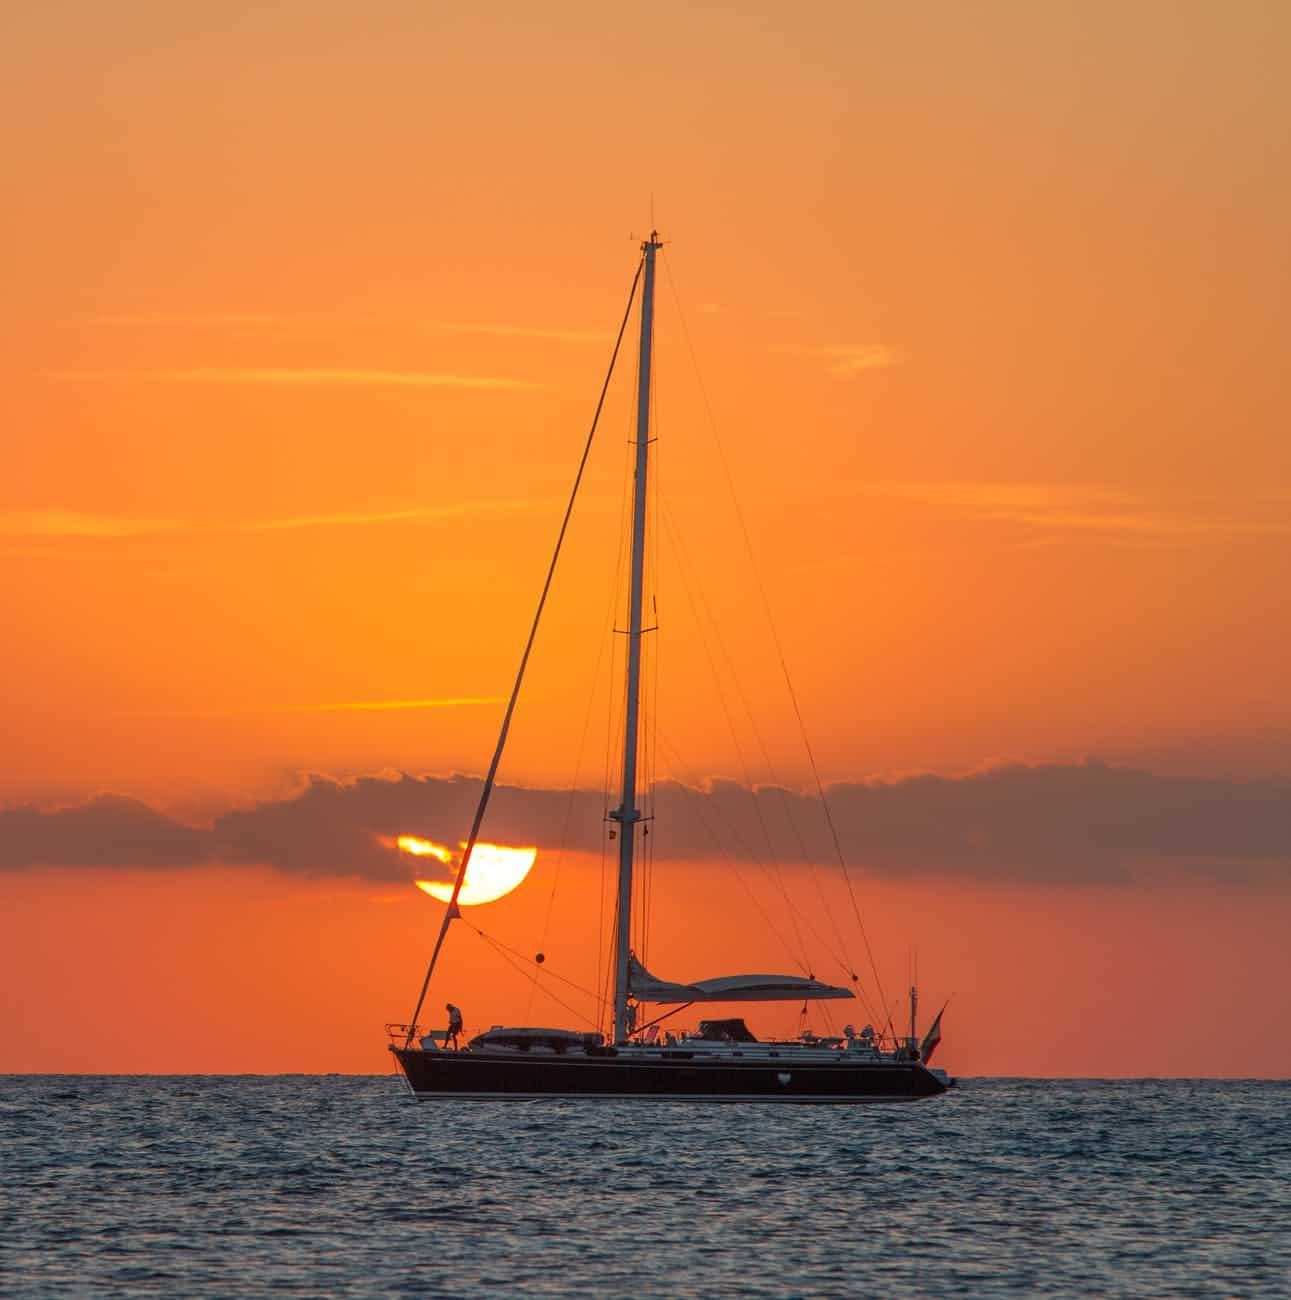 sailboat on body of water during sunset